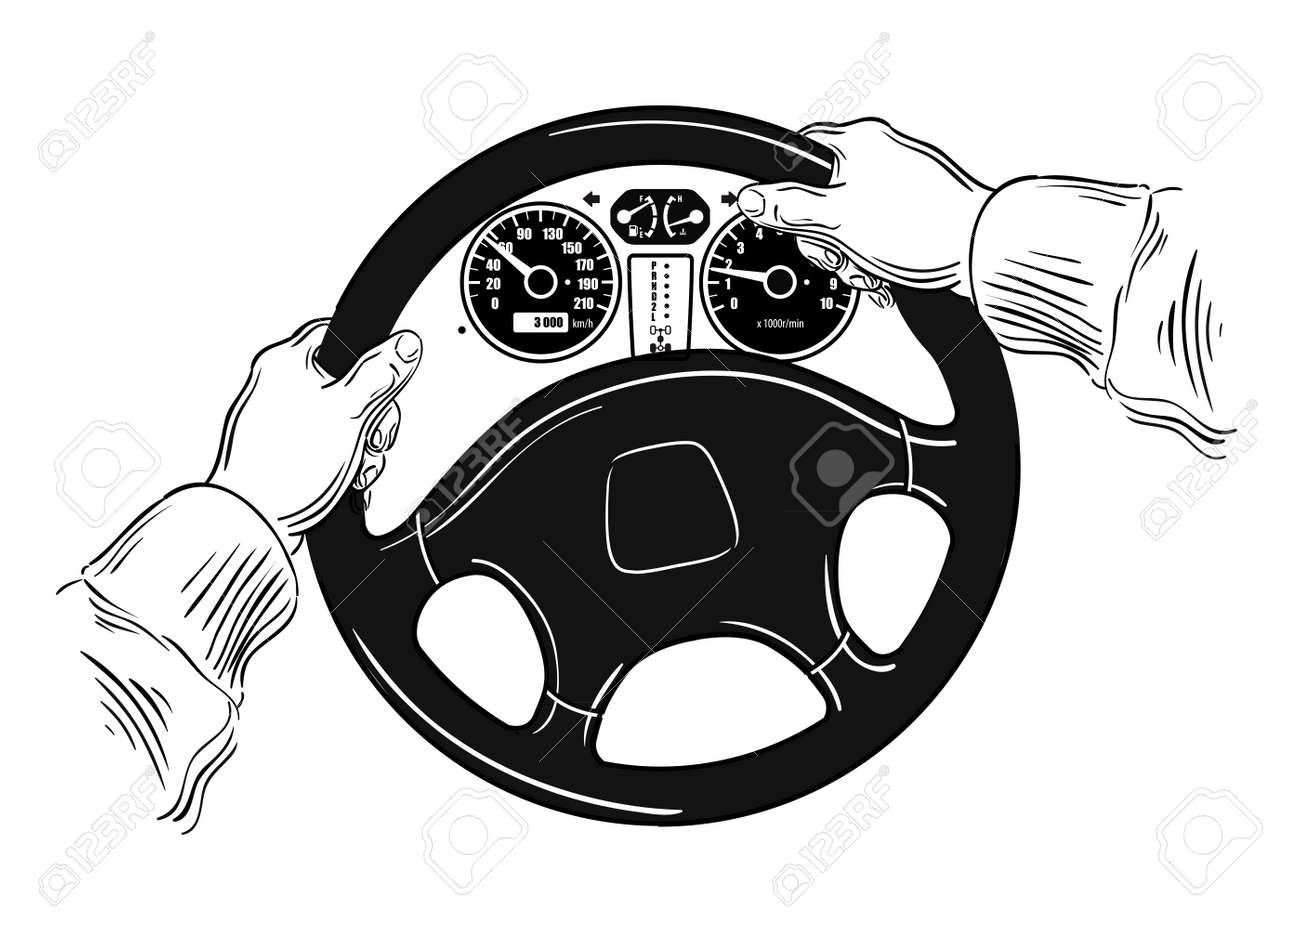 Hand Drawn Car Wheel Sketch Vector Illustration Royalty Free Cliparts Vectors And Stock Illustration Image 50079284